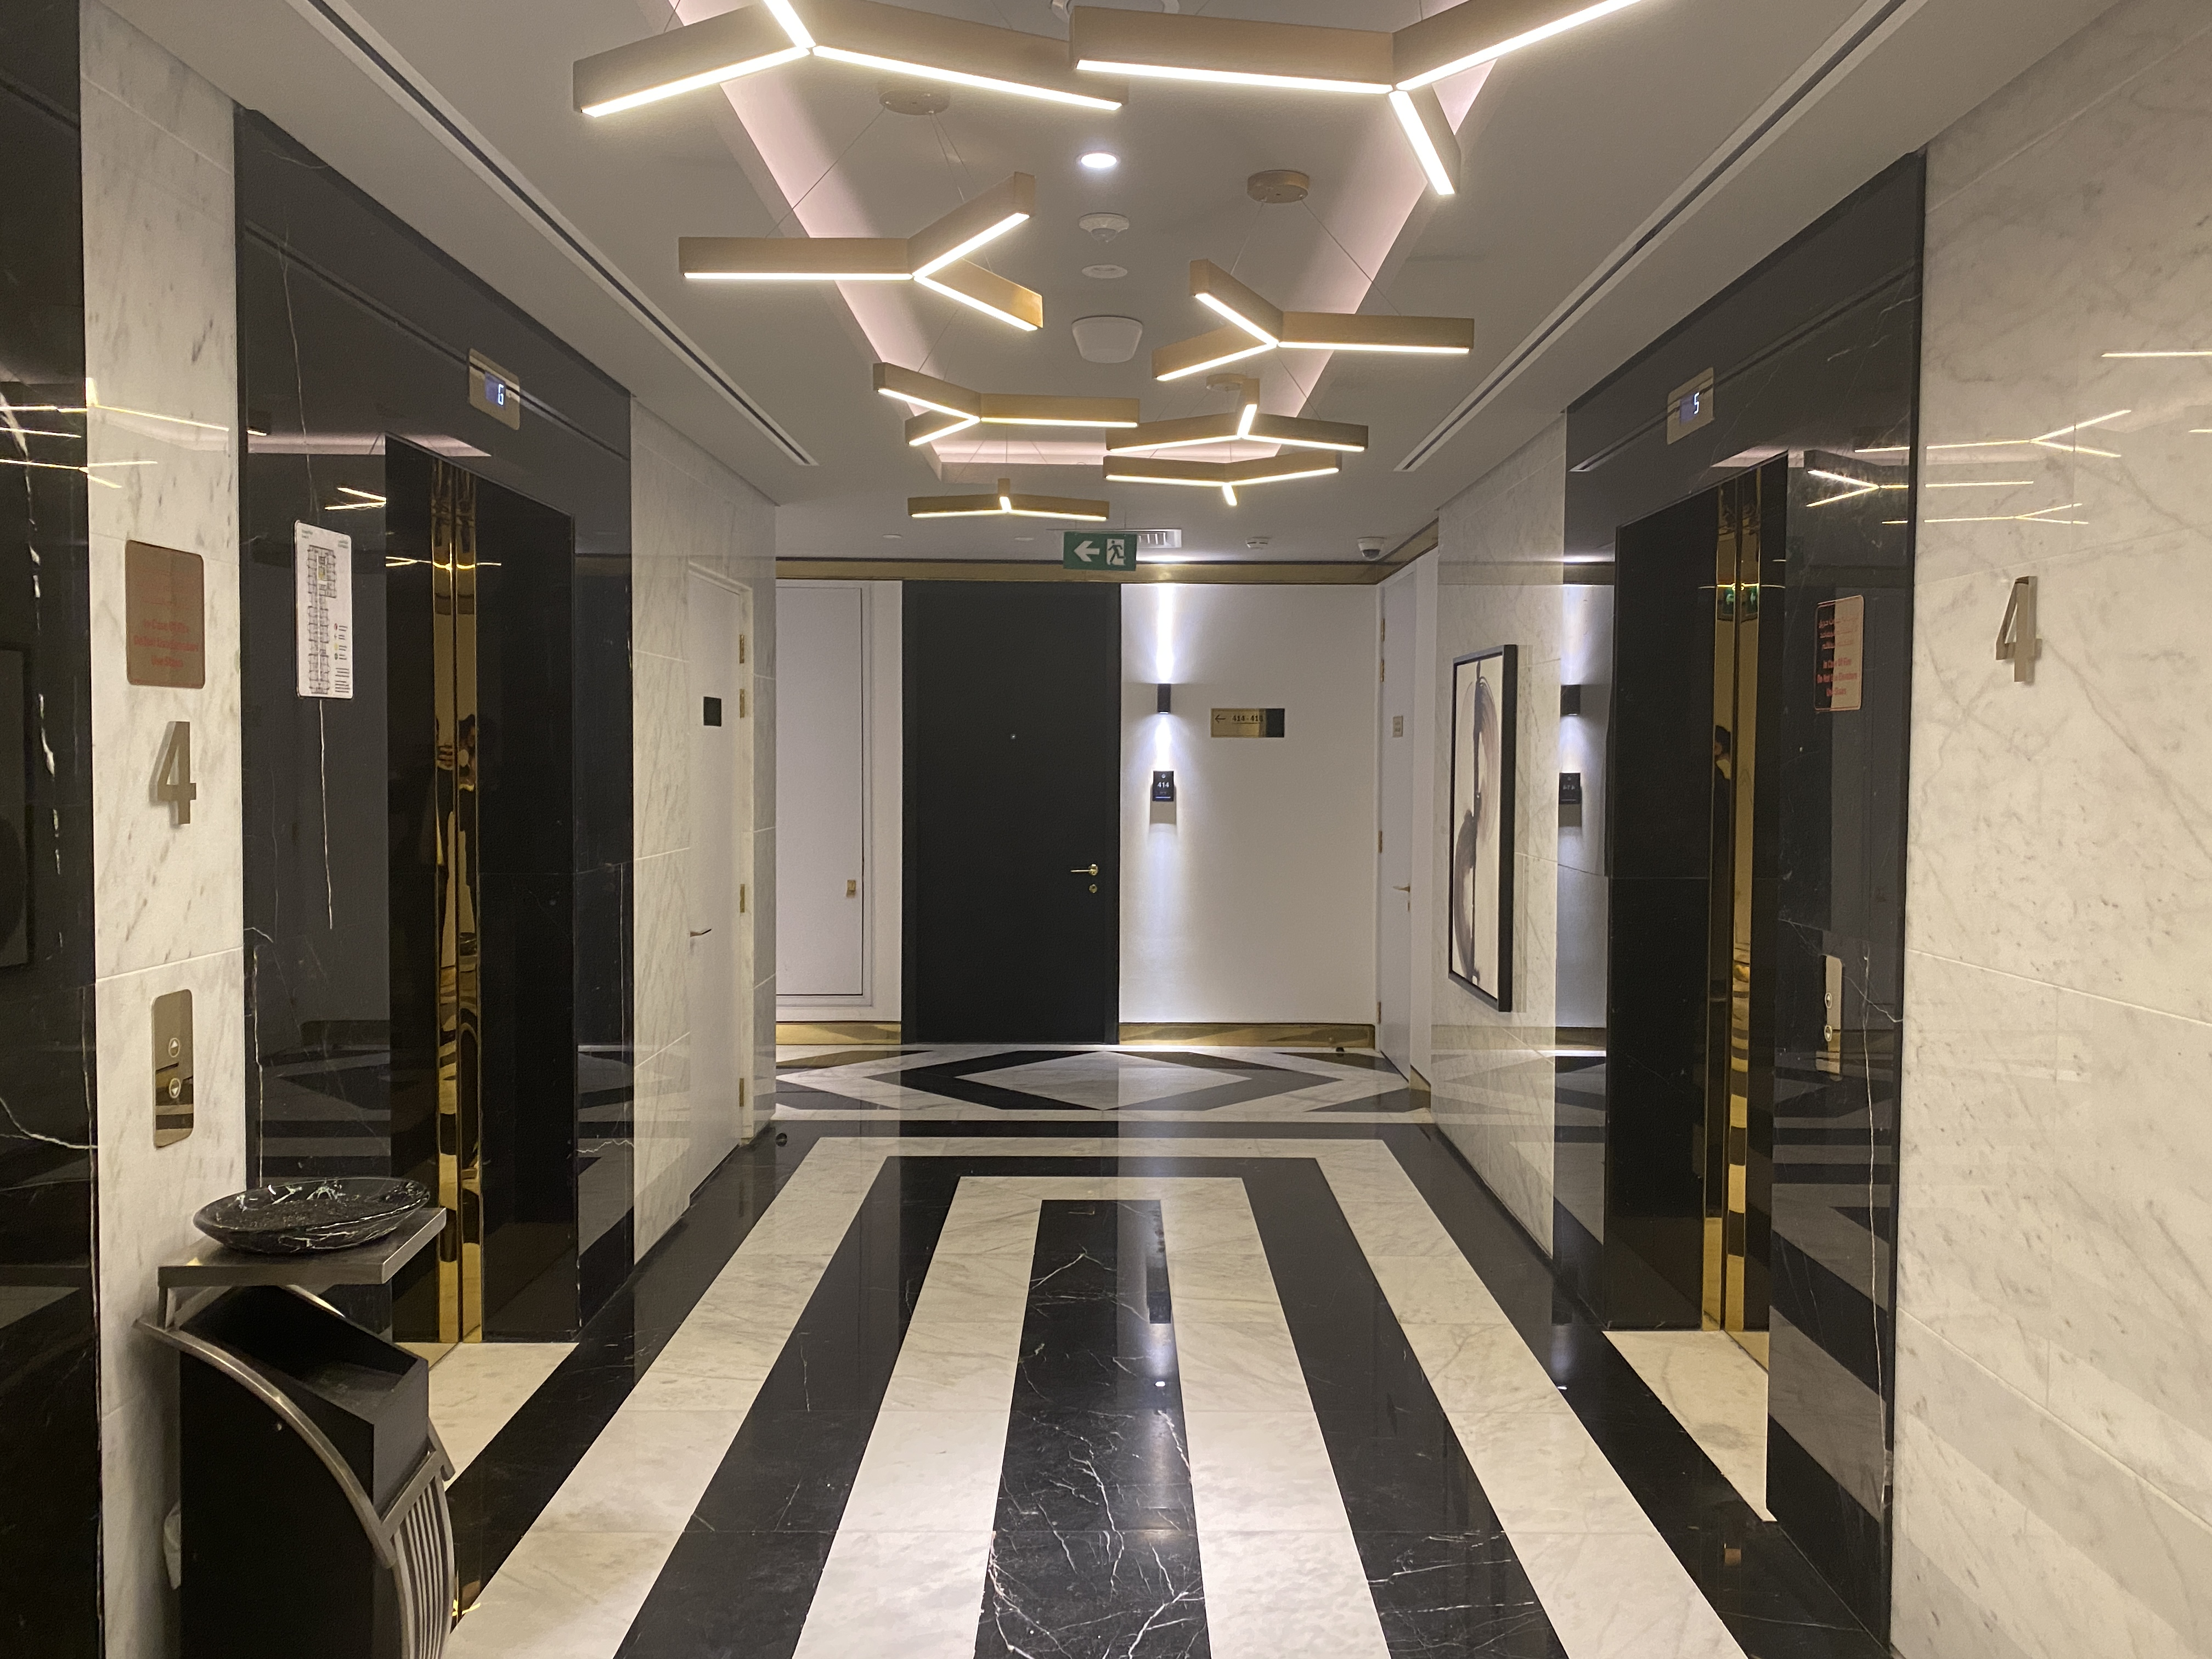 ELEGANT INTERIORS IN THE HEART OF BUSINESS BAY